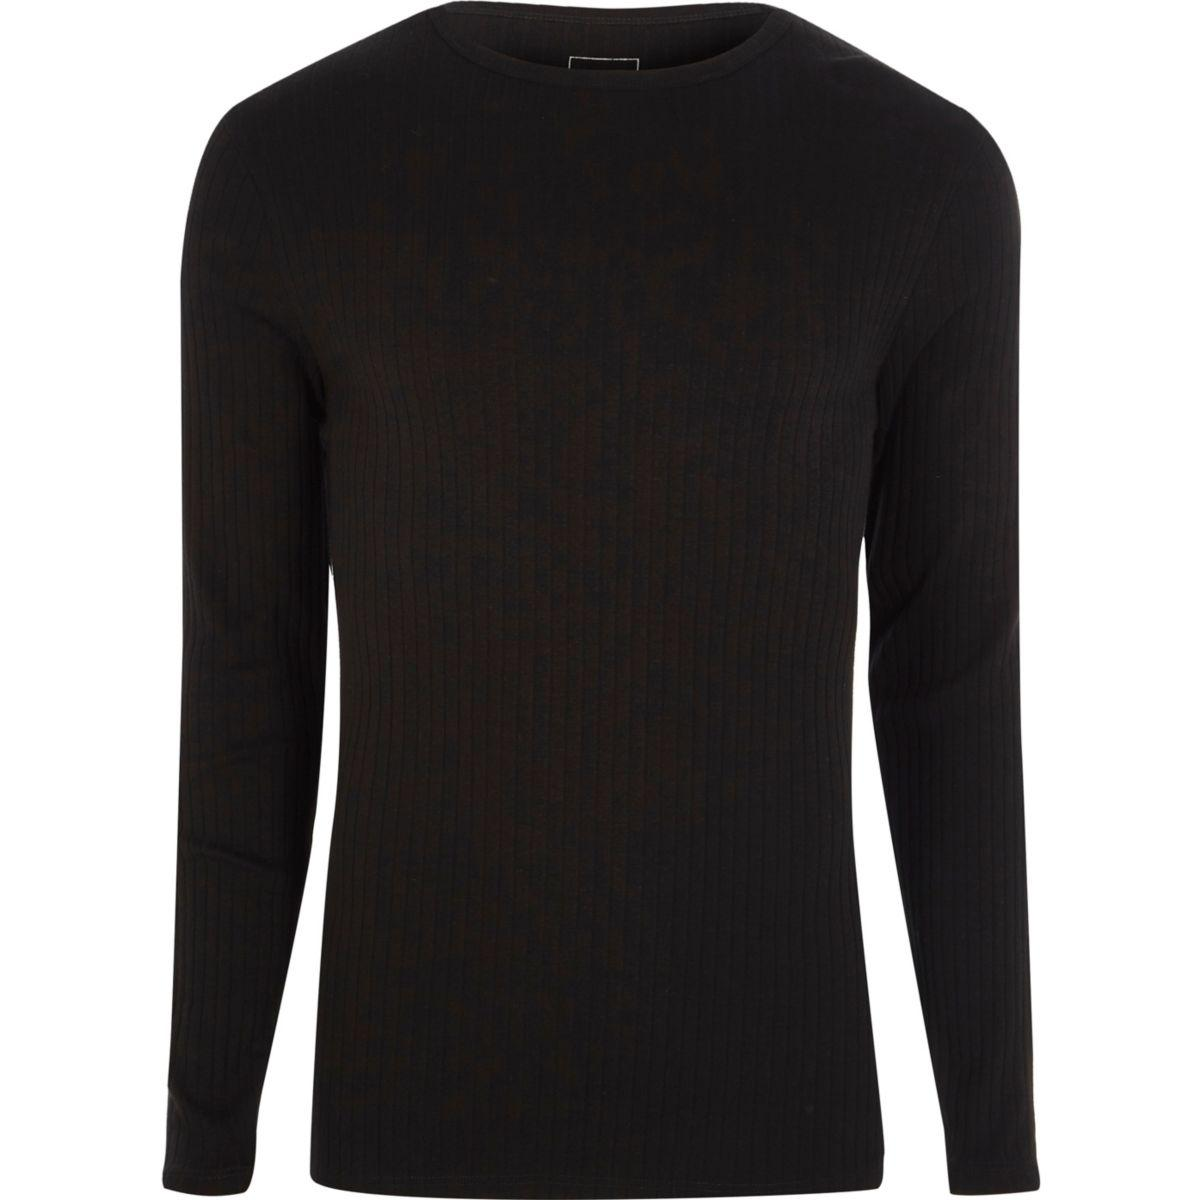 Lyst river island black ribbed slim fit long sleeve t for Black fitted long sleeve t shirts